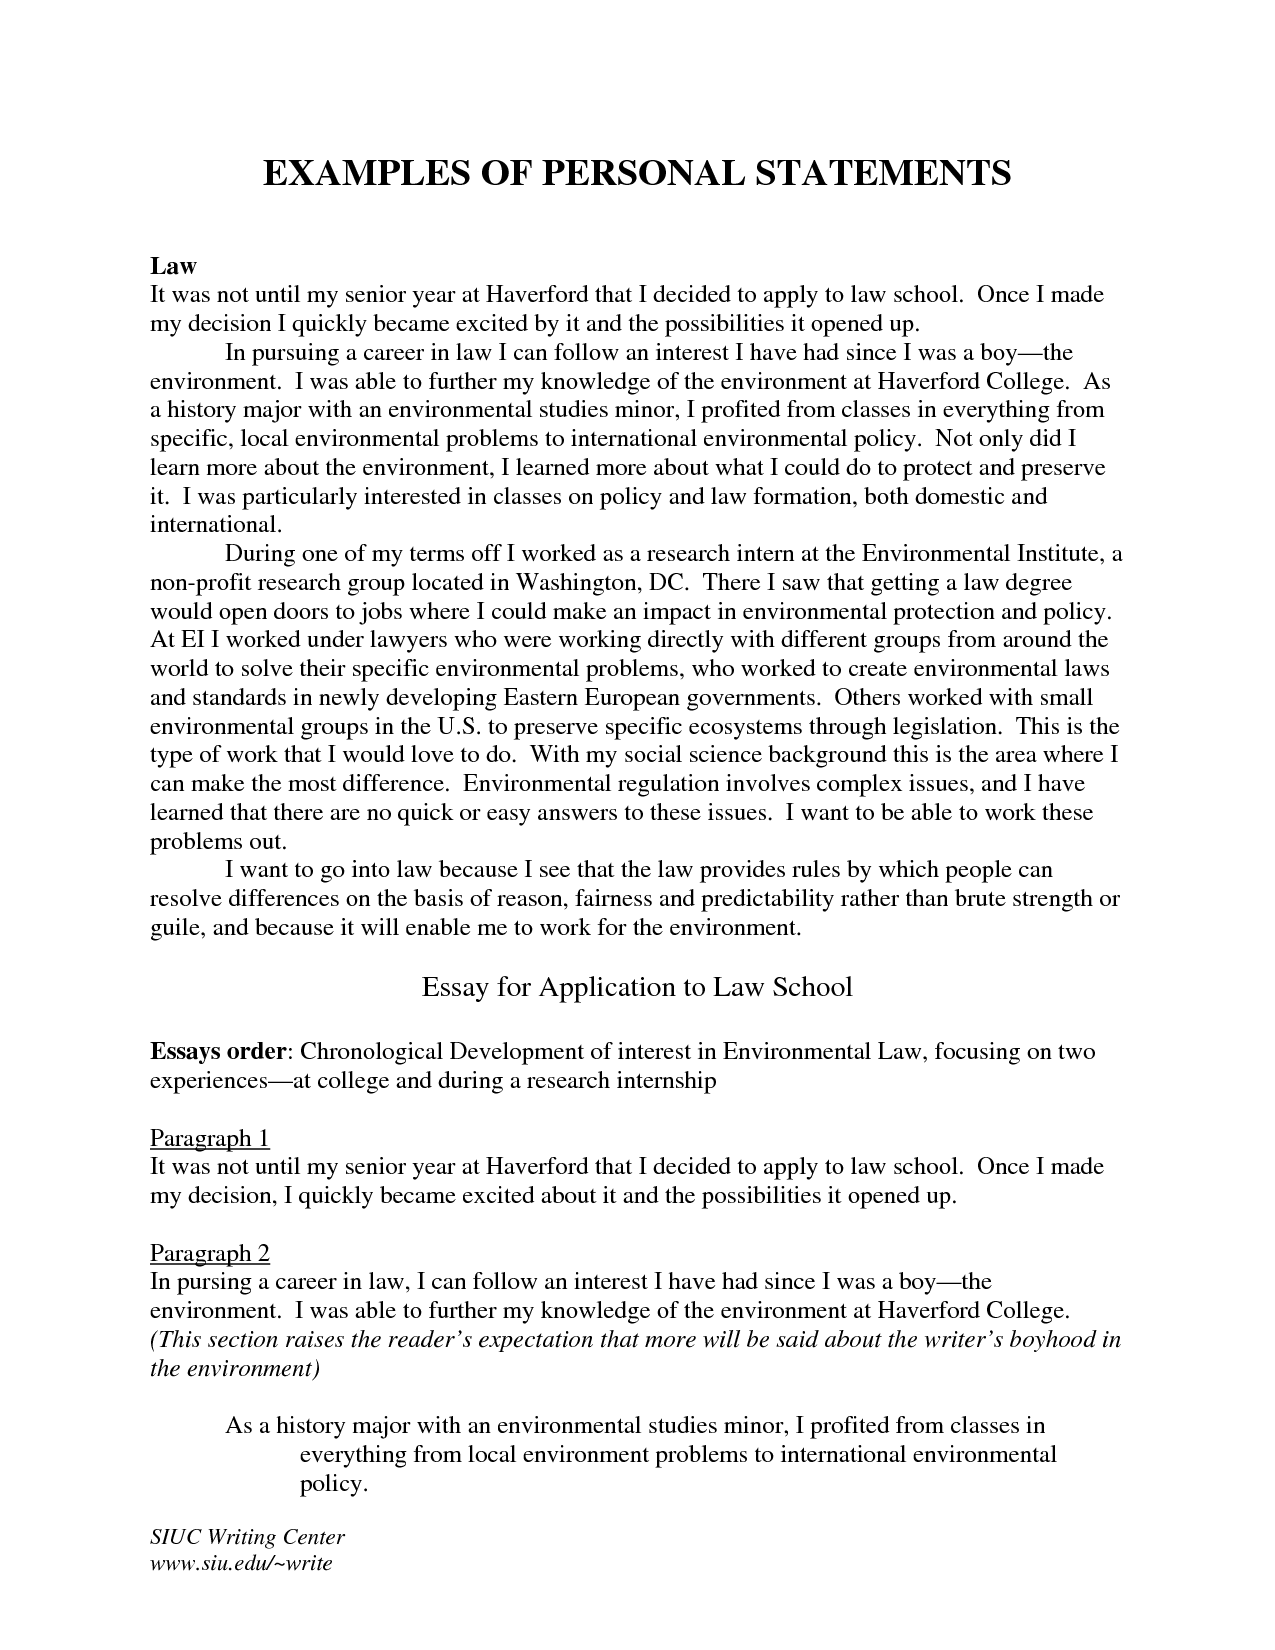 Grad School Essays Samples Offers Tips On Writing A Statement Of